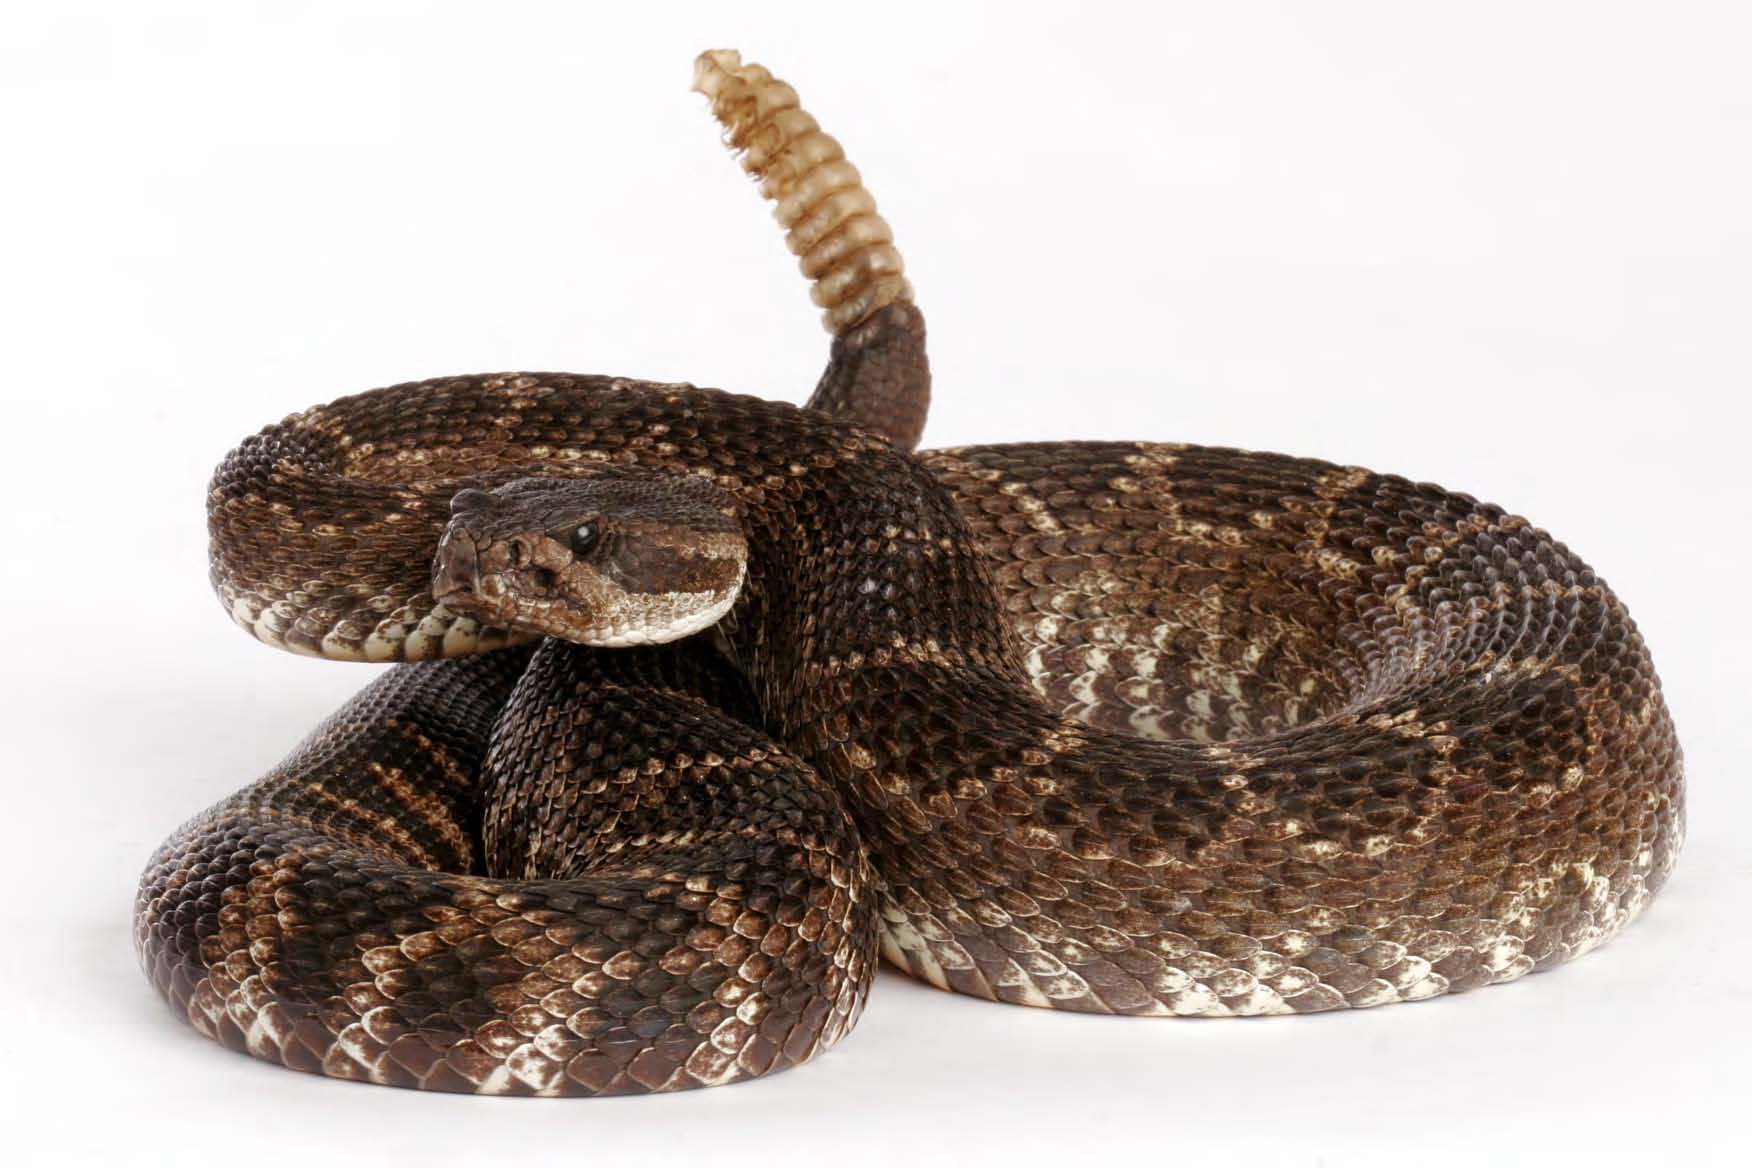 Snakes in New Mexico